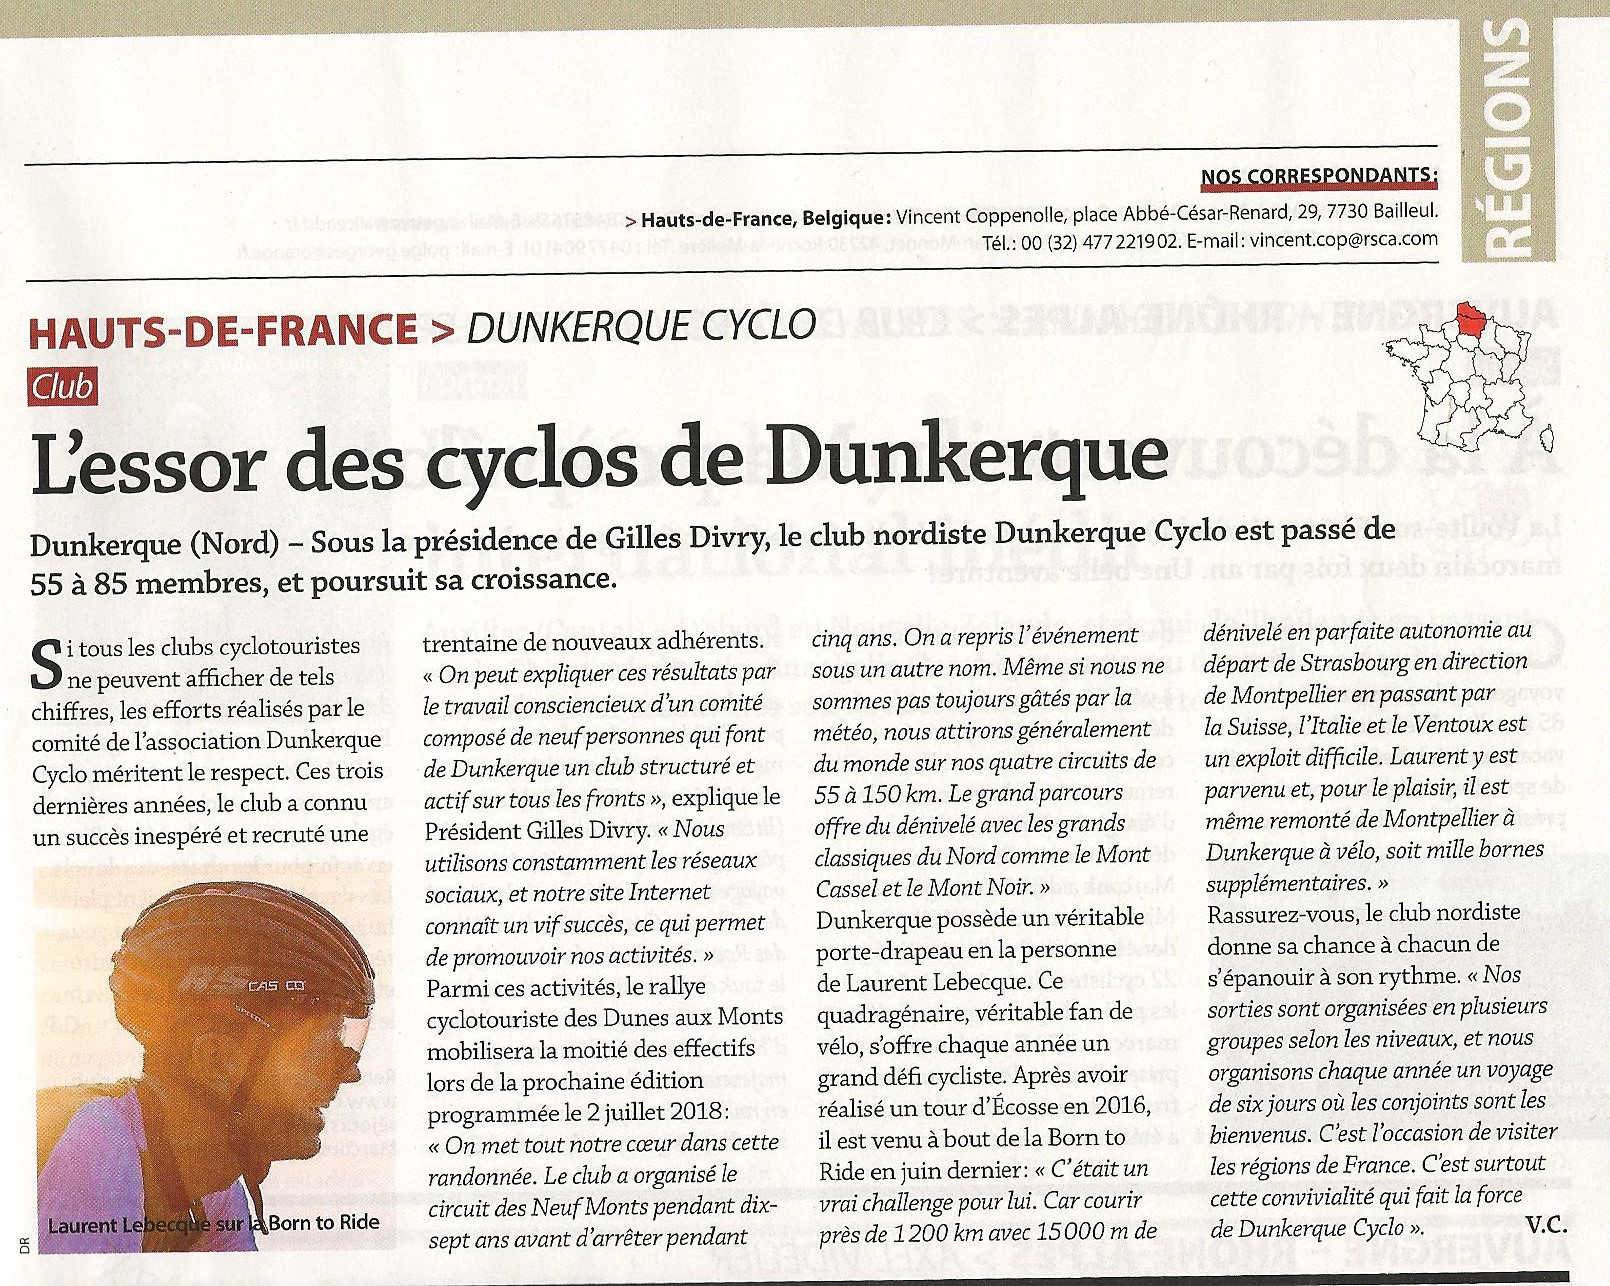 dunkerque cyclo dans le magazine le cycle dunkerque cyclo. Black Bedroom Furniture Sets. Home Design Ideas